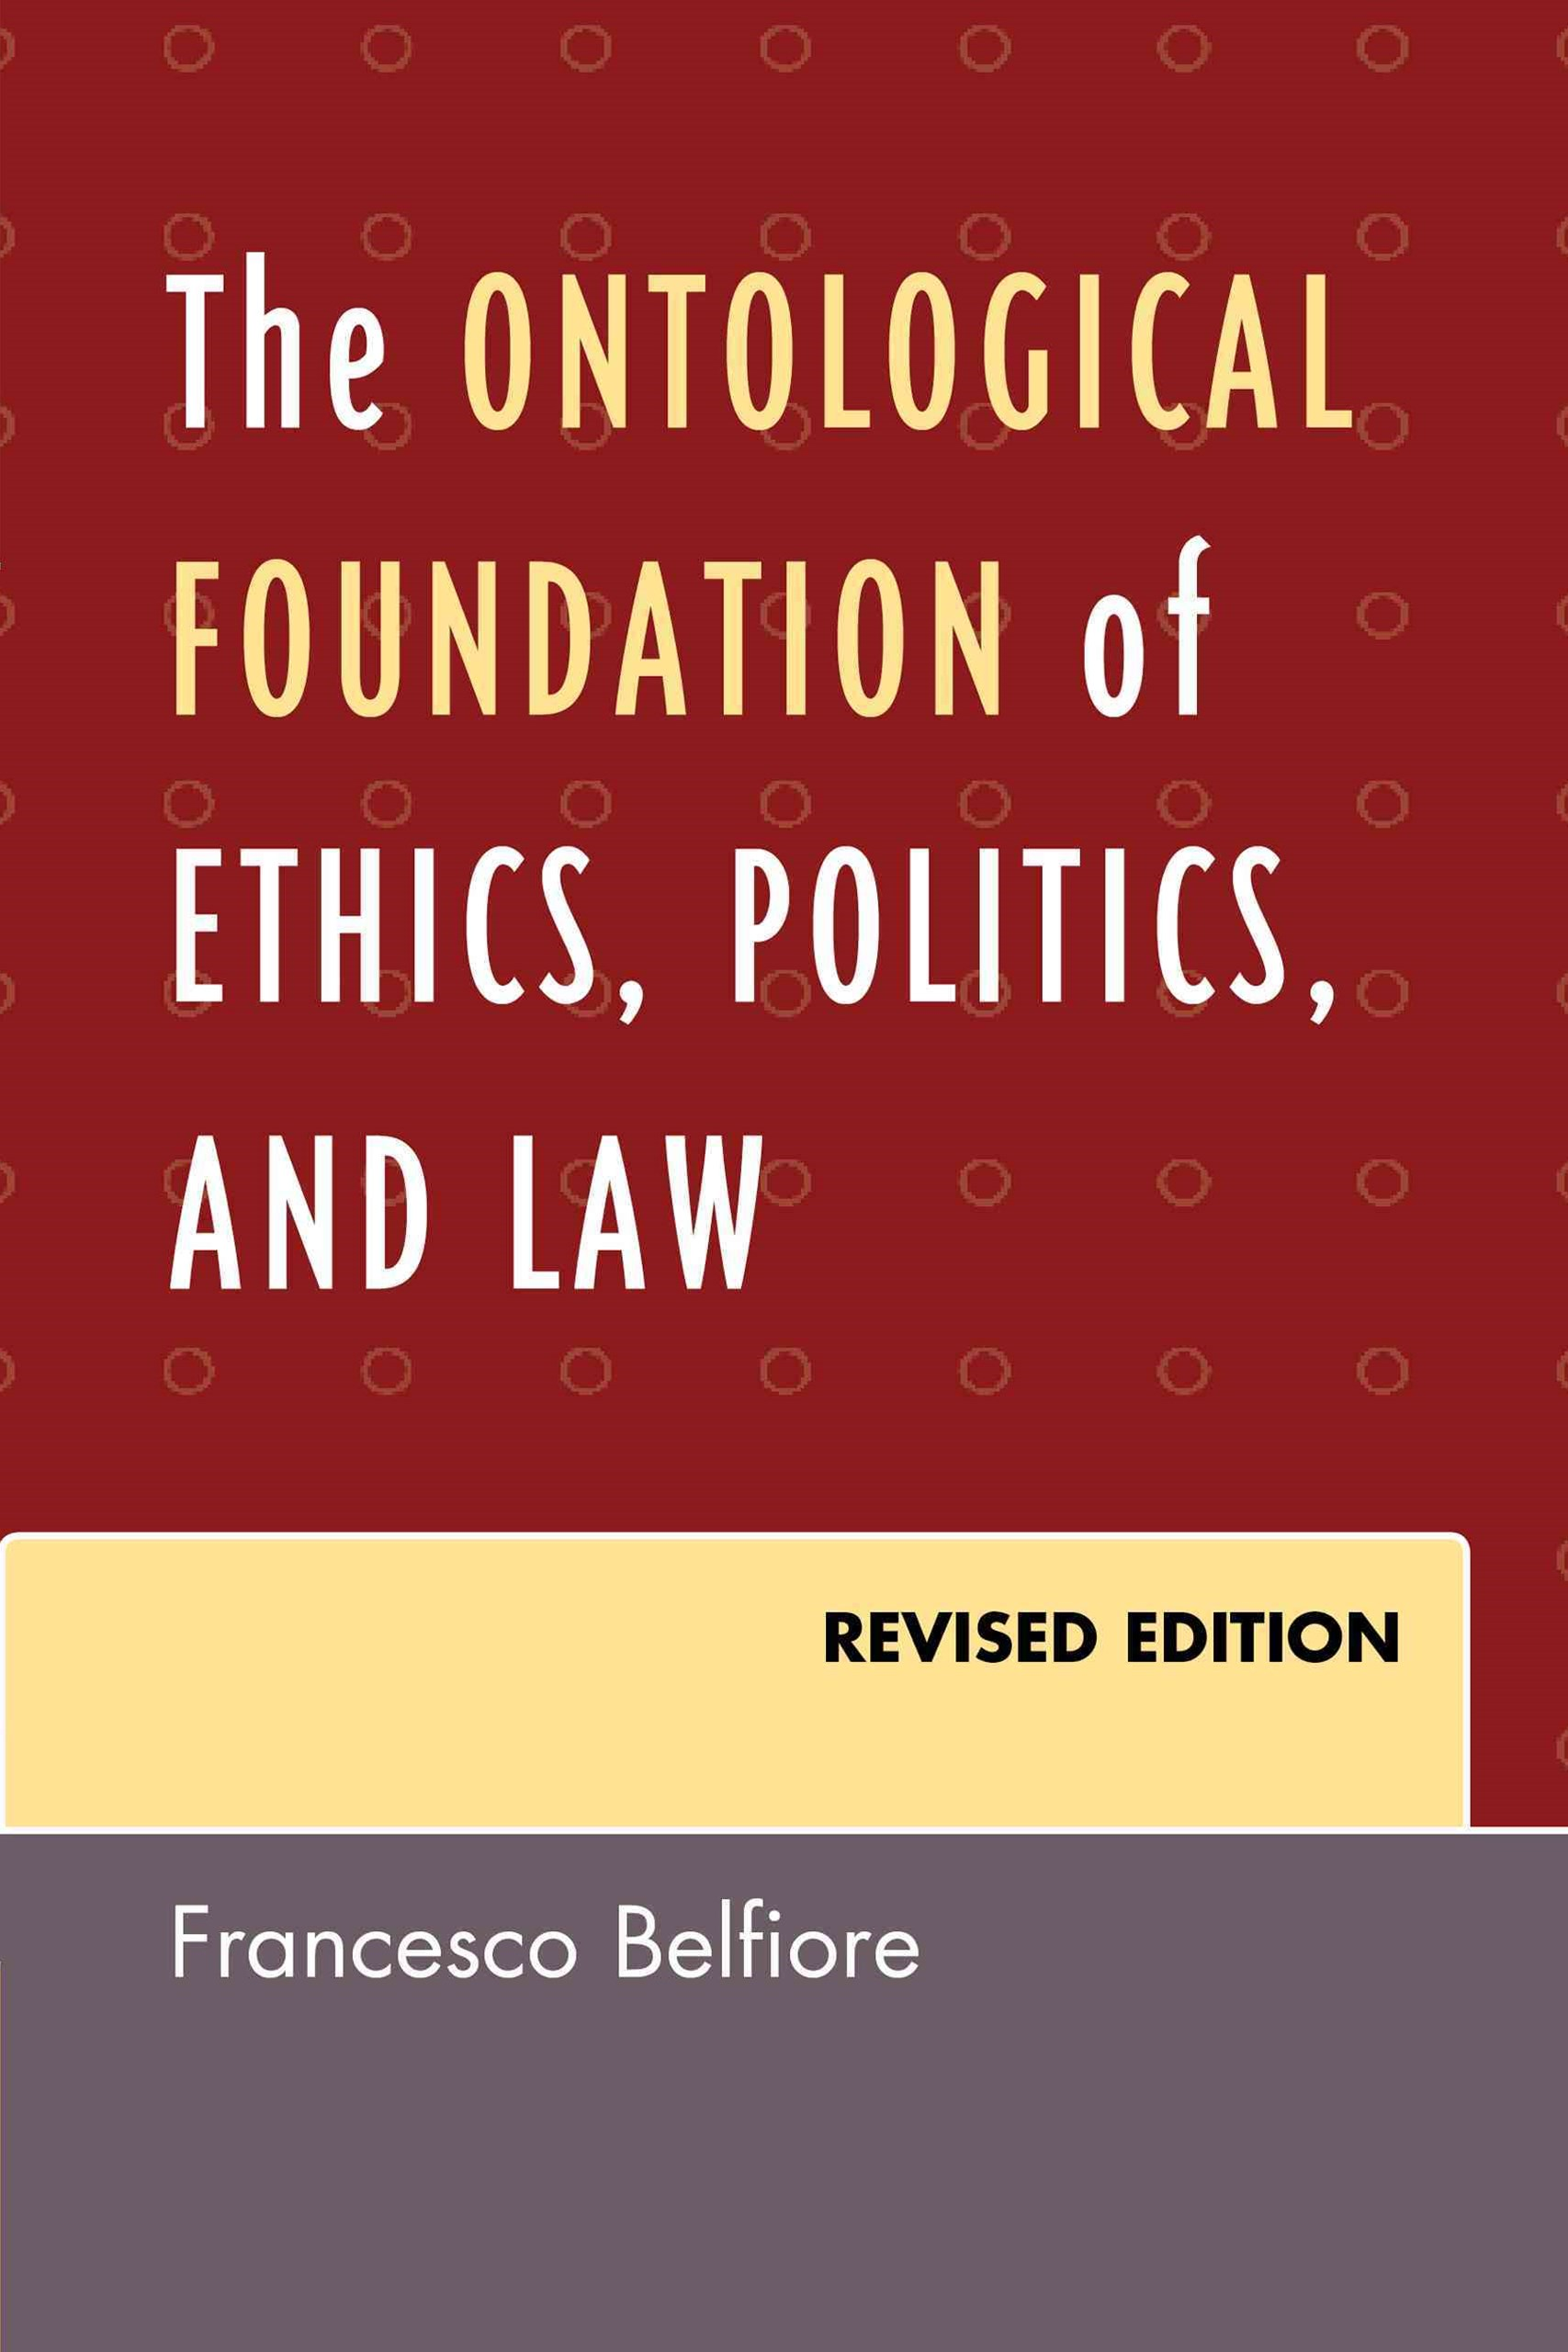 The Ontological Foundation of Ethics, Politics, and Law